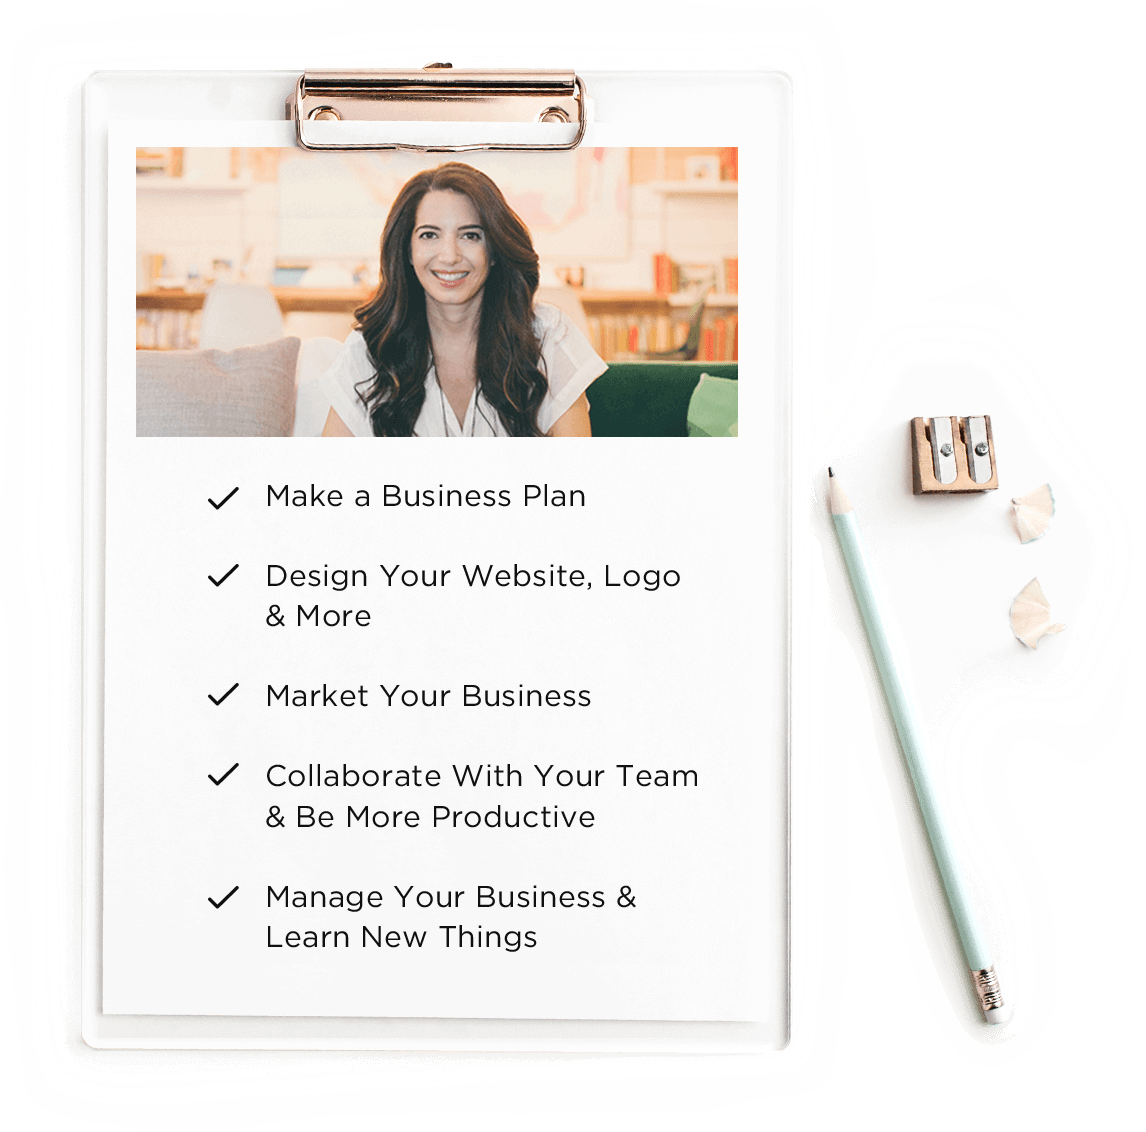 A clipboard with a sheet of paper that displays the following list: Make a Business Plan; Design Your Website, Logo & More; Market Your Business; Collaborate With Your Team & Be More Productive; Manage Your Business & Learn New Things.